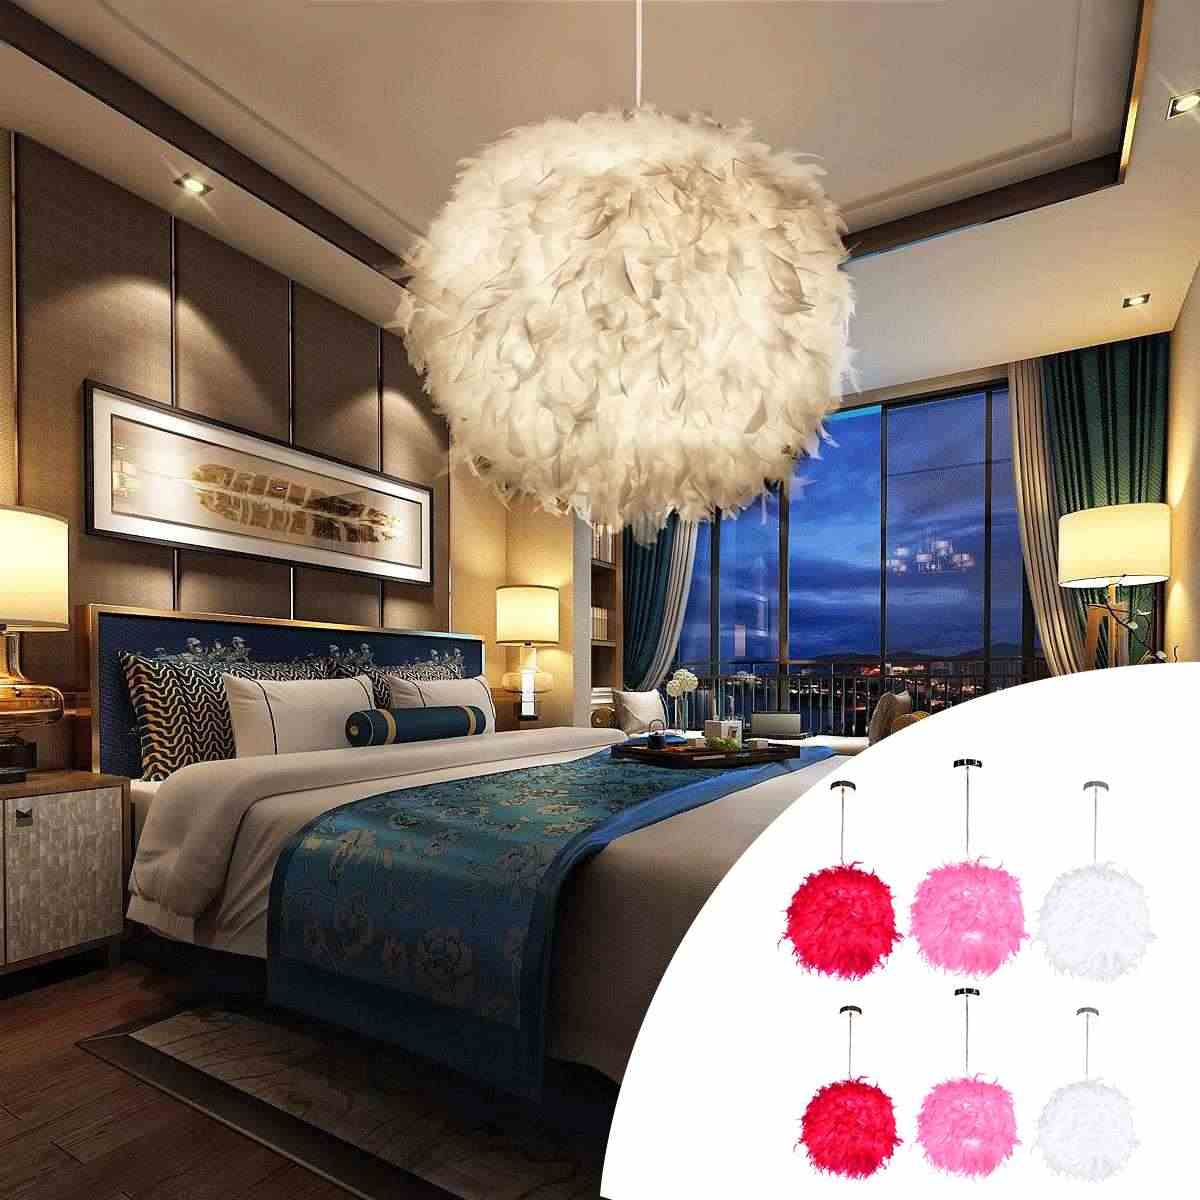 Red/Pink/White 110-220V E27 Modern Feather Ball Lamp shade Ceiling Pendant Light Shade Bedroom Living Room Soft Safe Decor